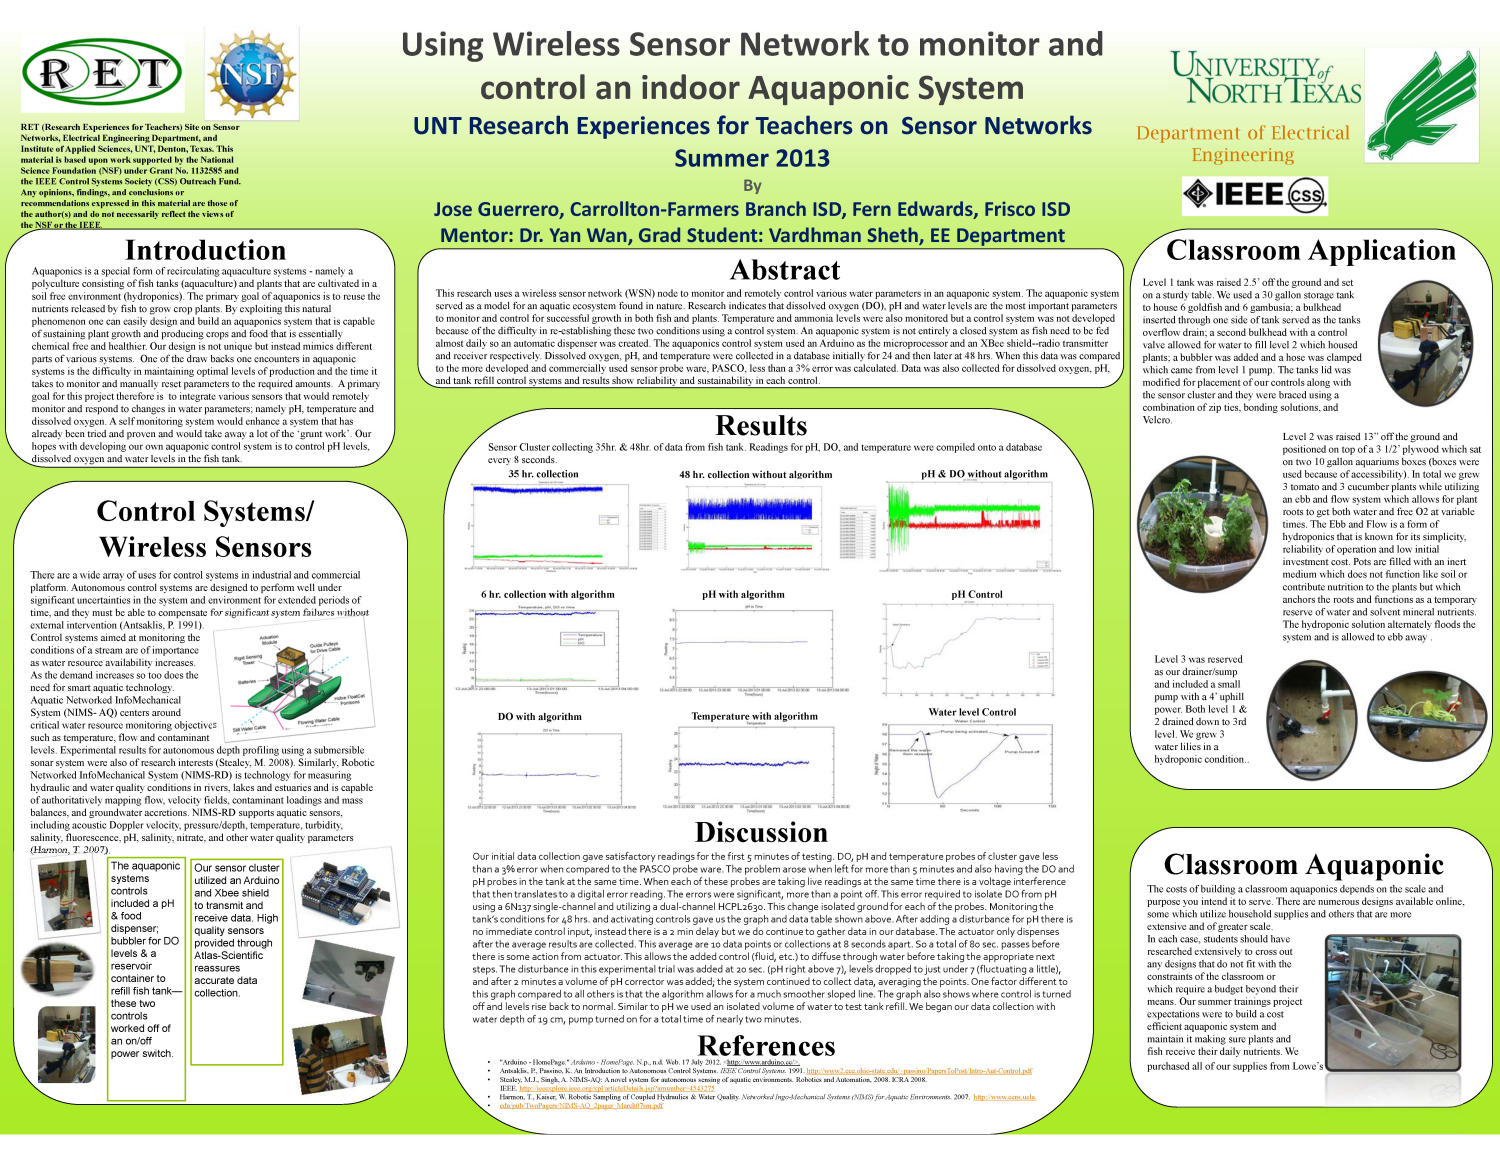 Using Wireless Sensor Network To Monitor And Control An